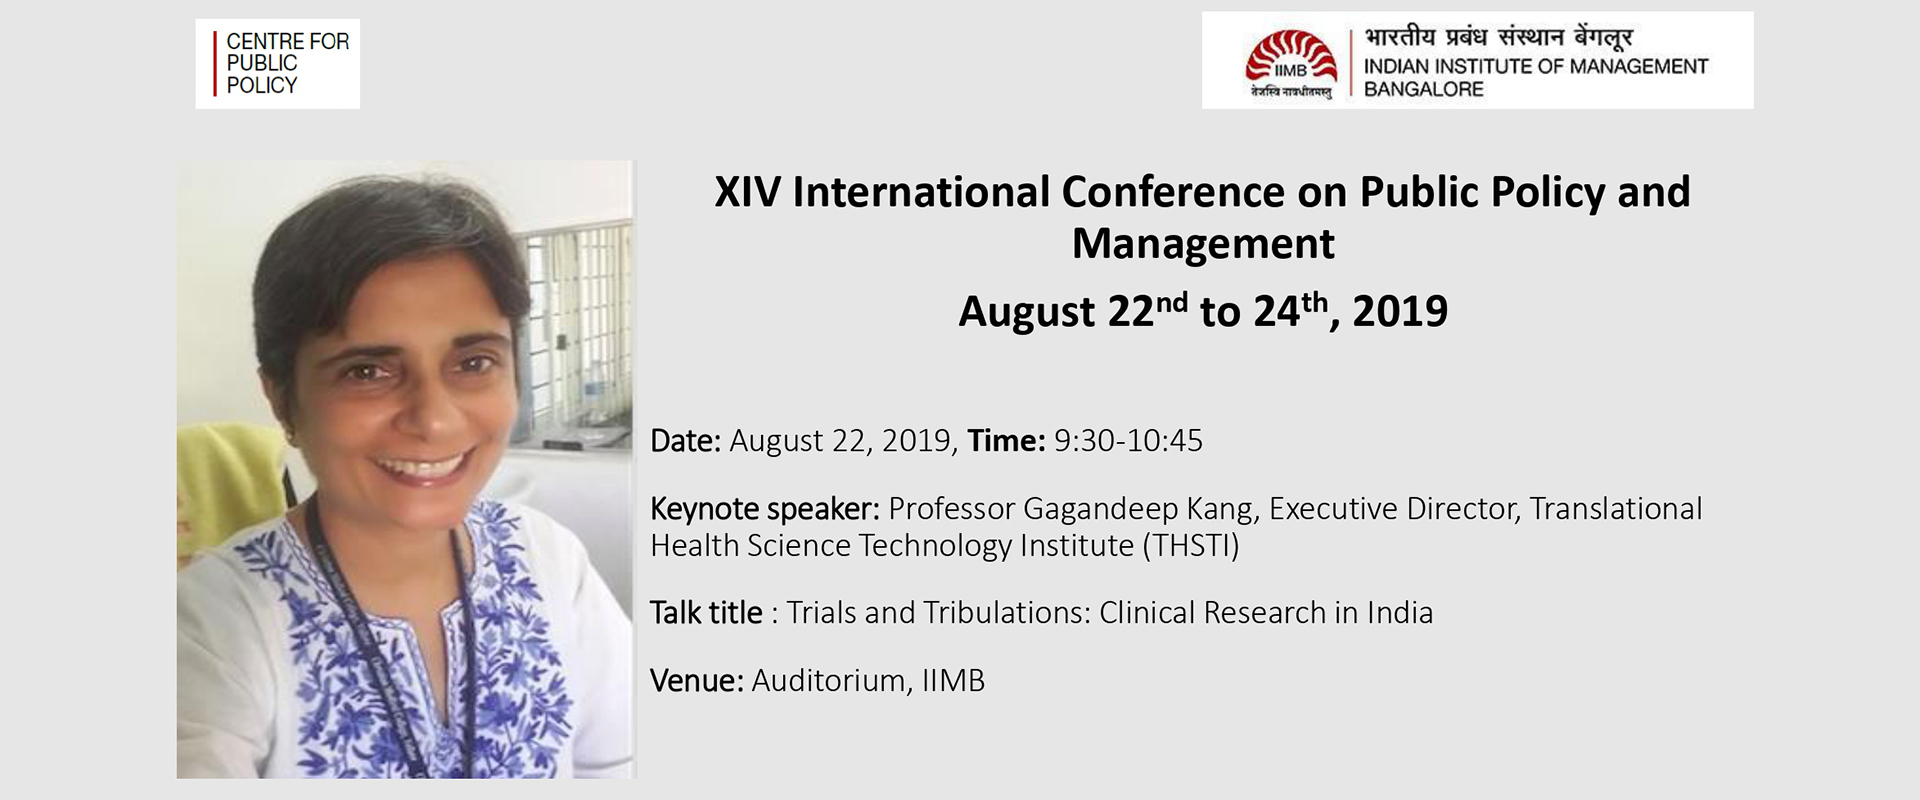 XIV International Conference on Public Policy and Management | IIM